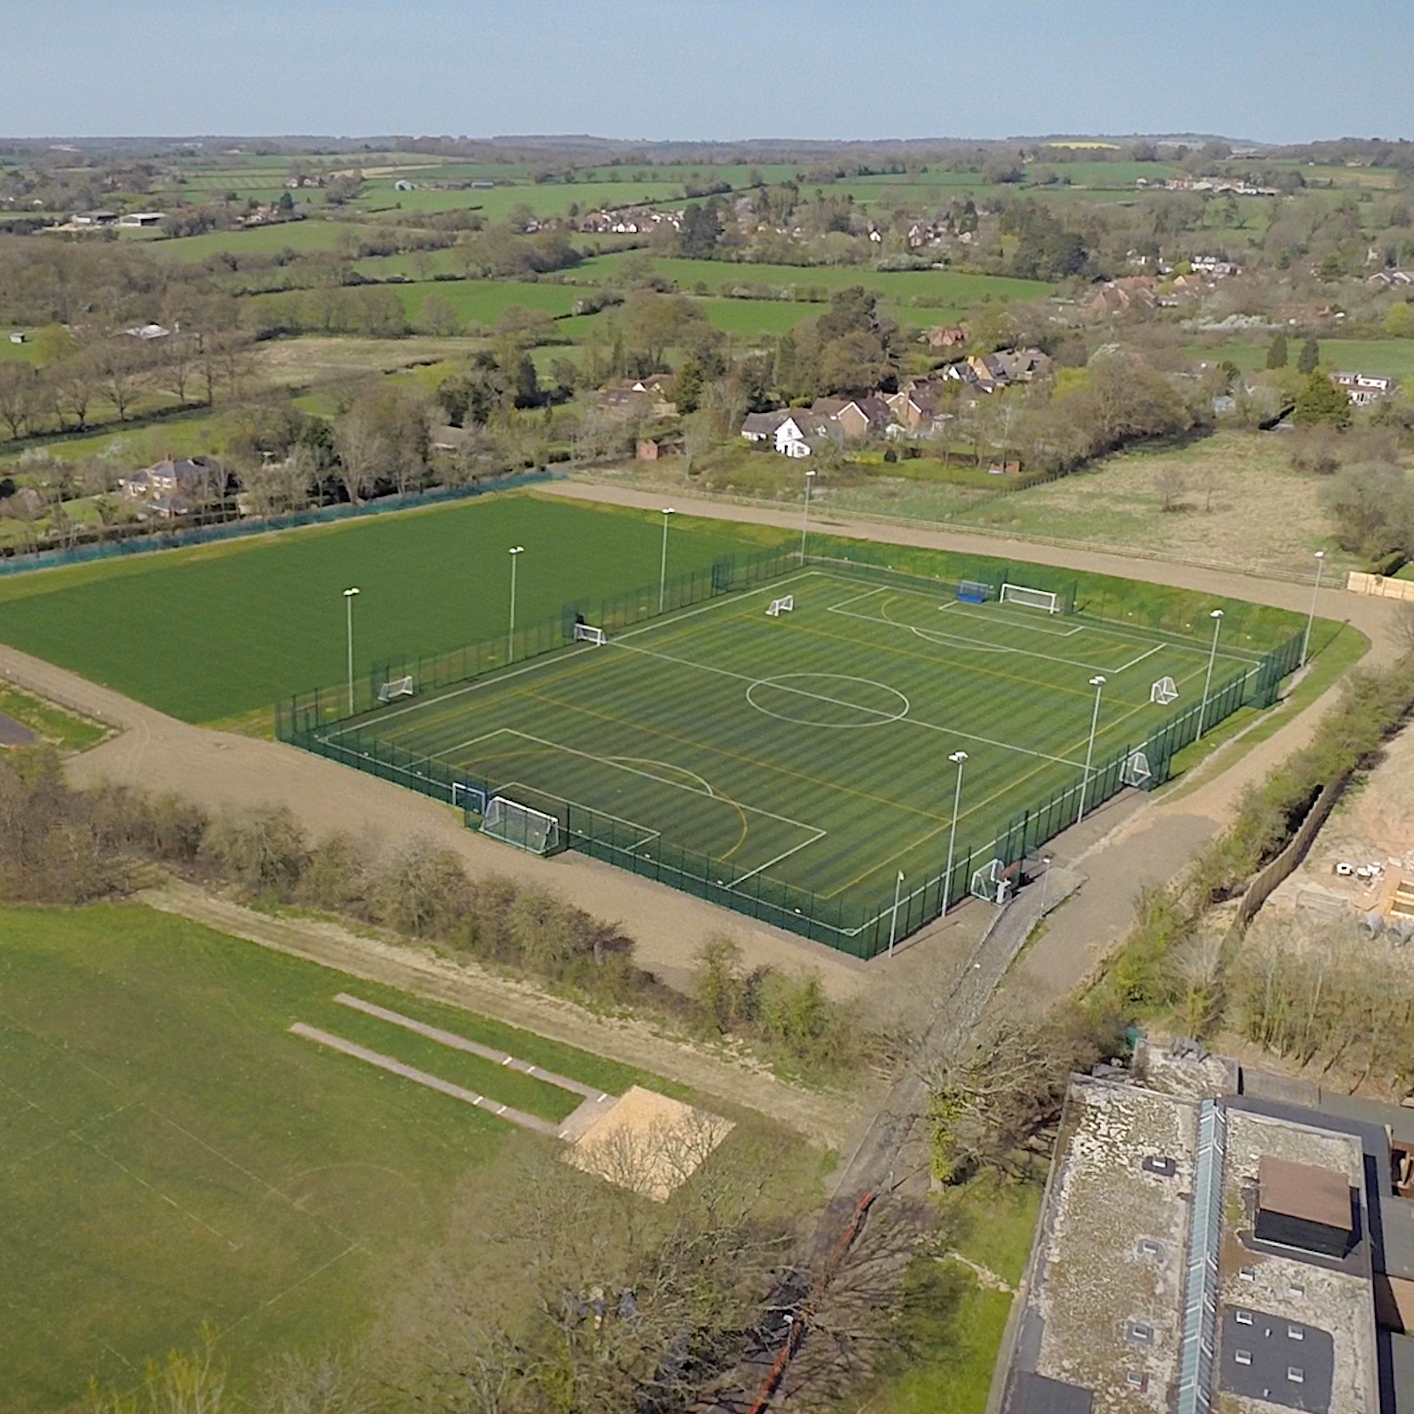 Swanmore STP and Grass Pitch Aerial.jpg